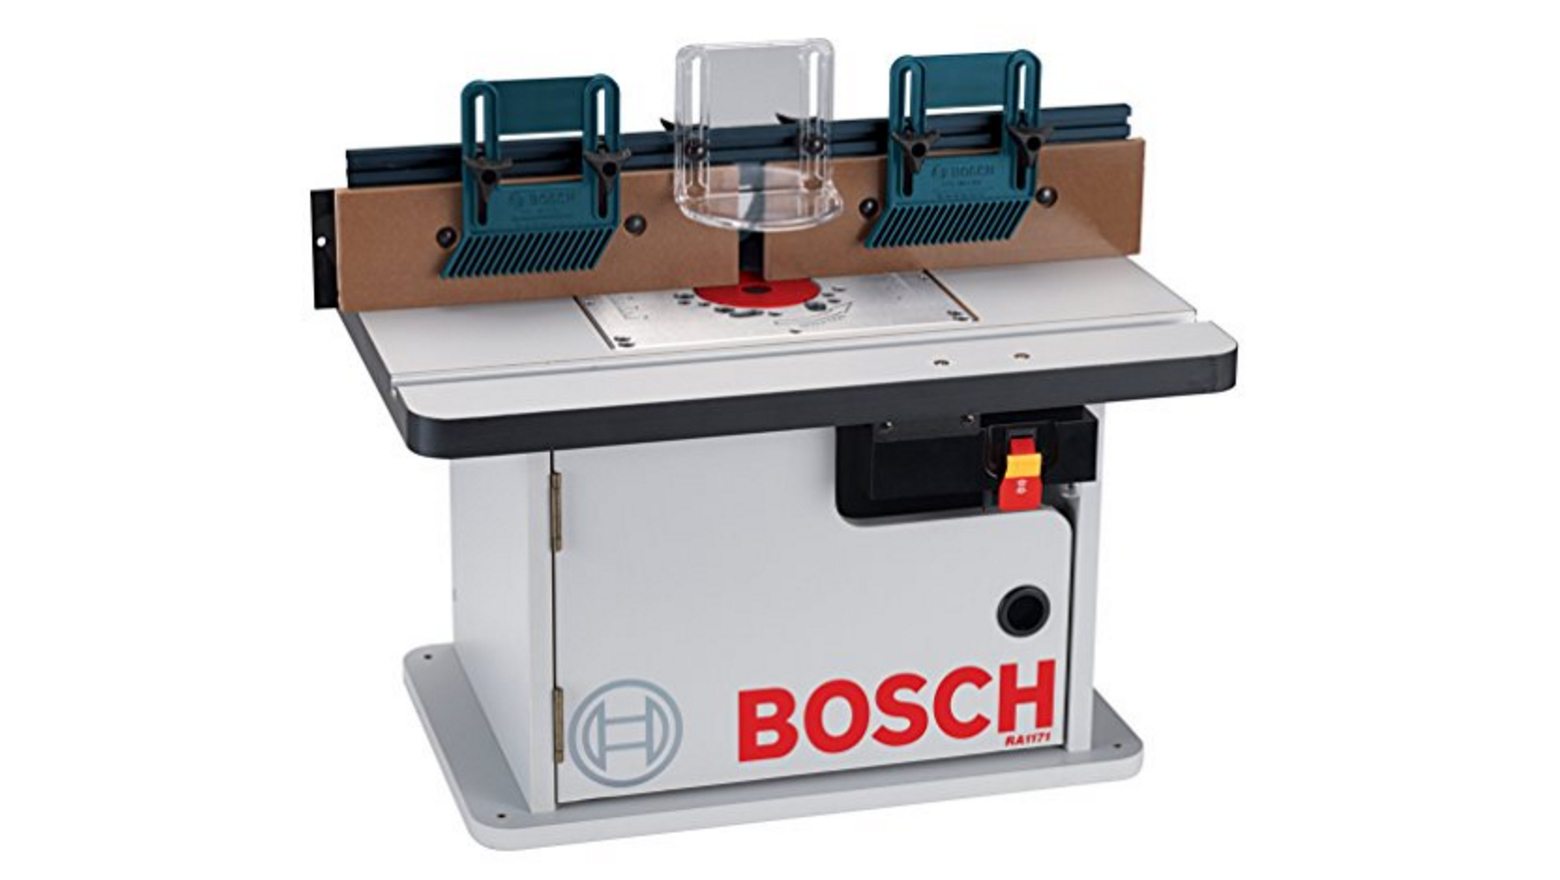 Amazon, cyber monday, cyber monday sales, cyber monday deals, tools, power tools, hand tools, woodworking tools, router table, bosch, bosch tools